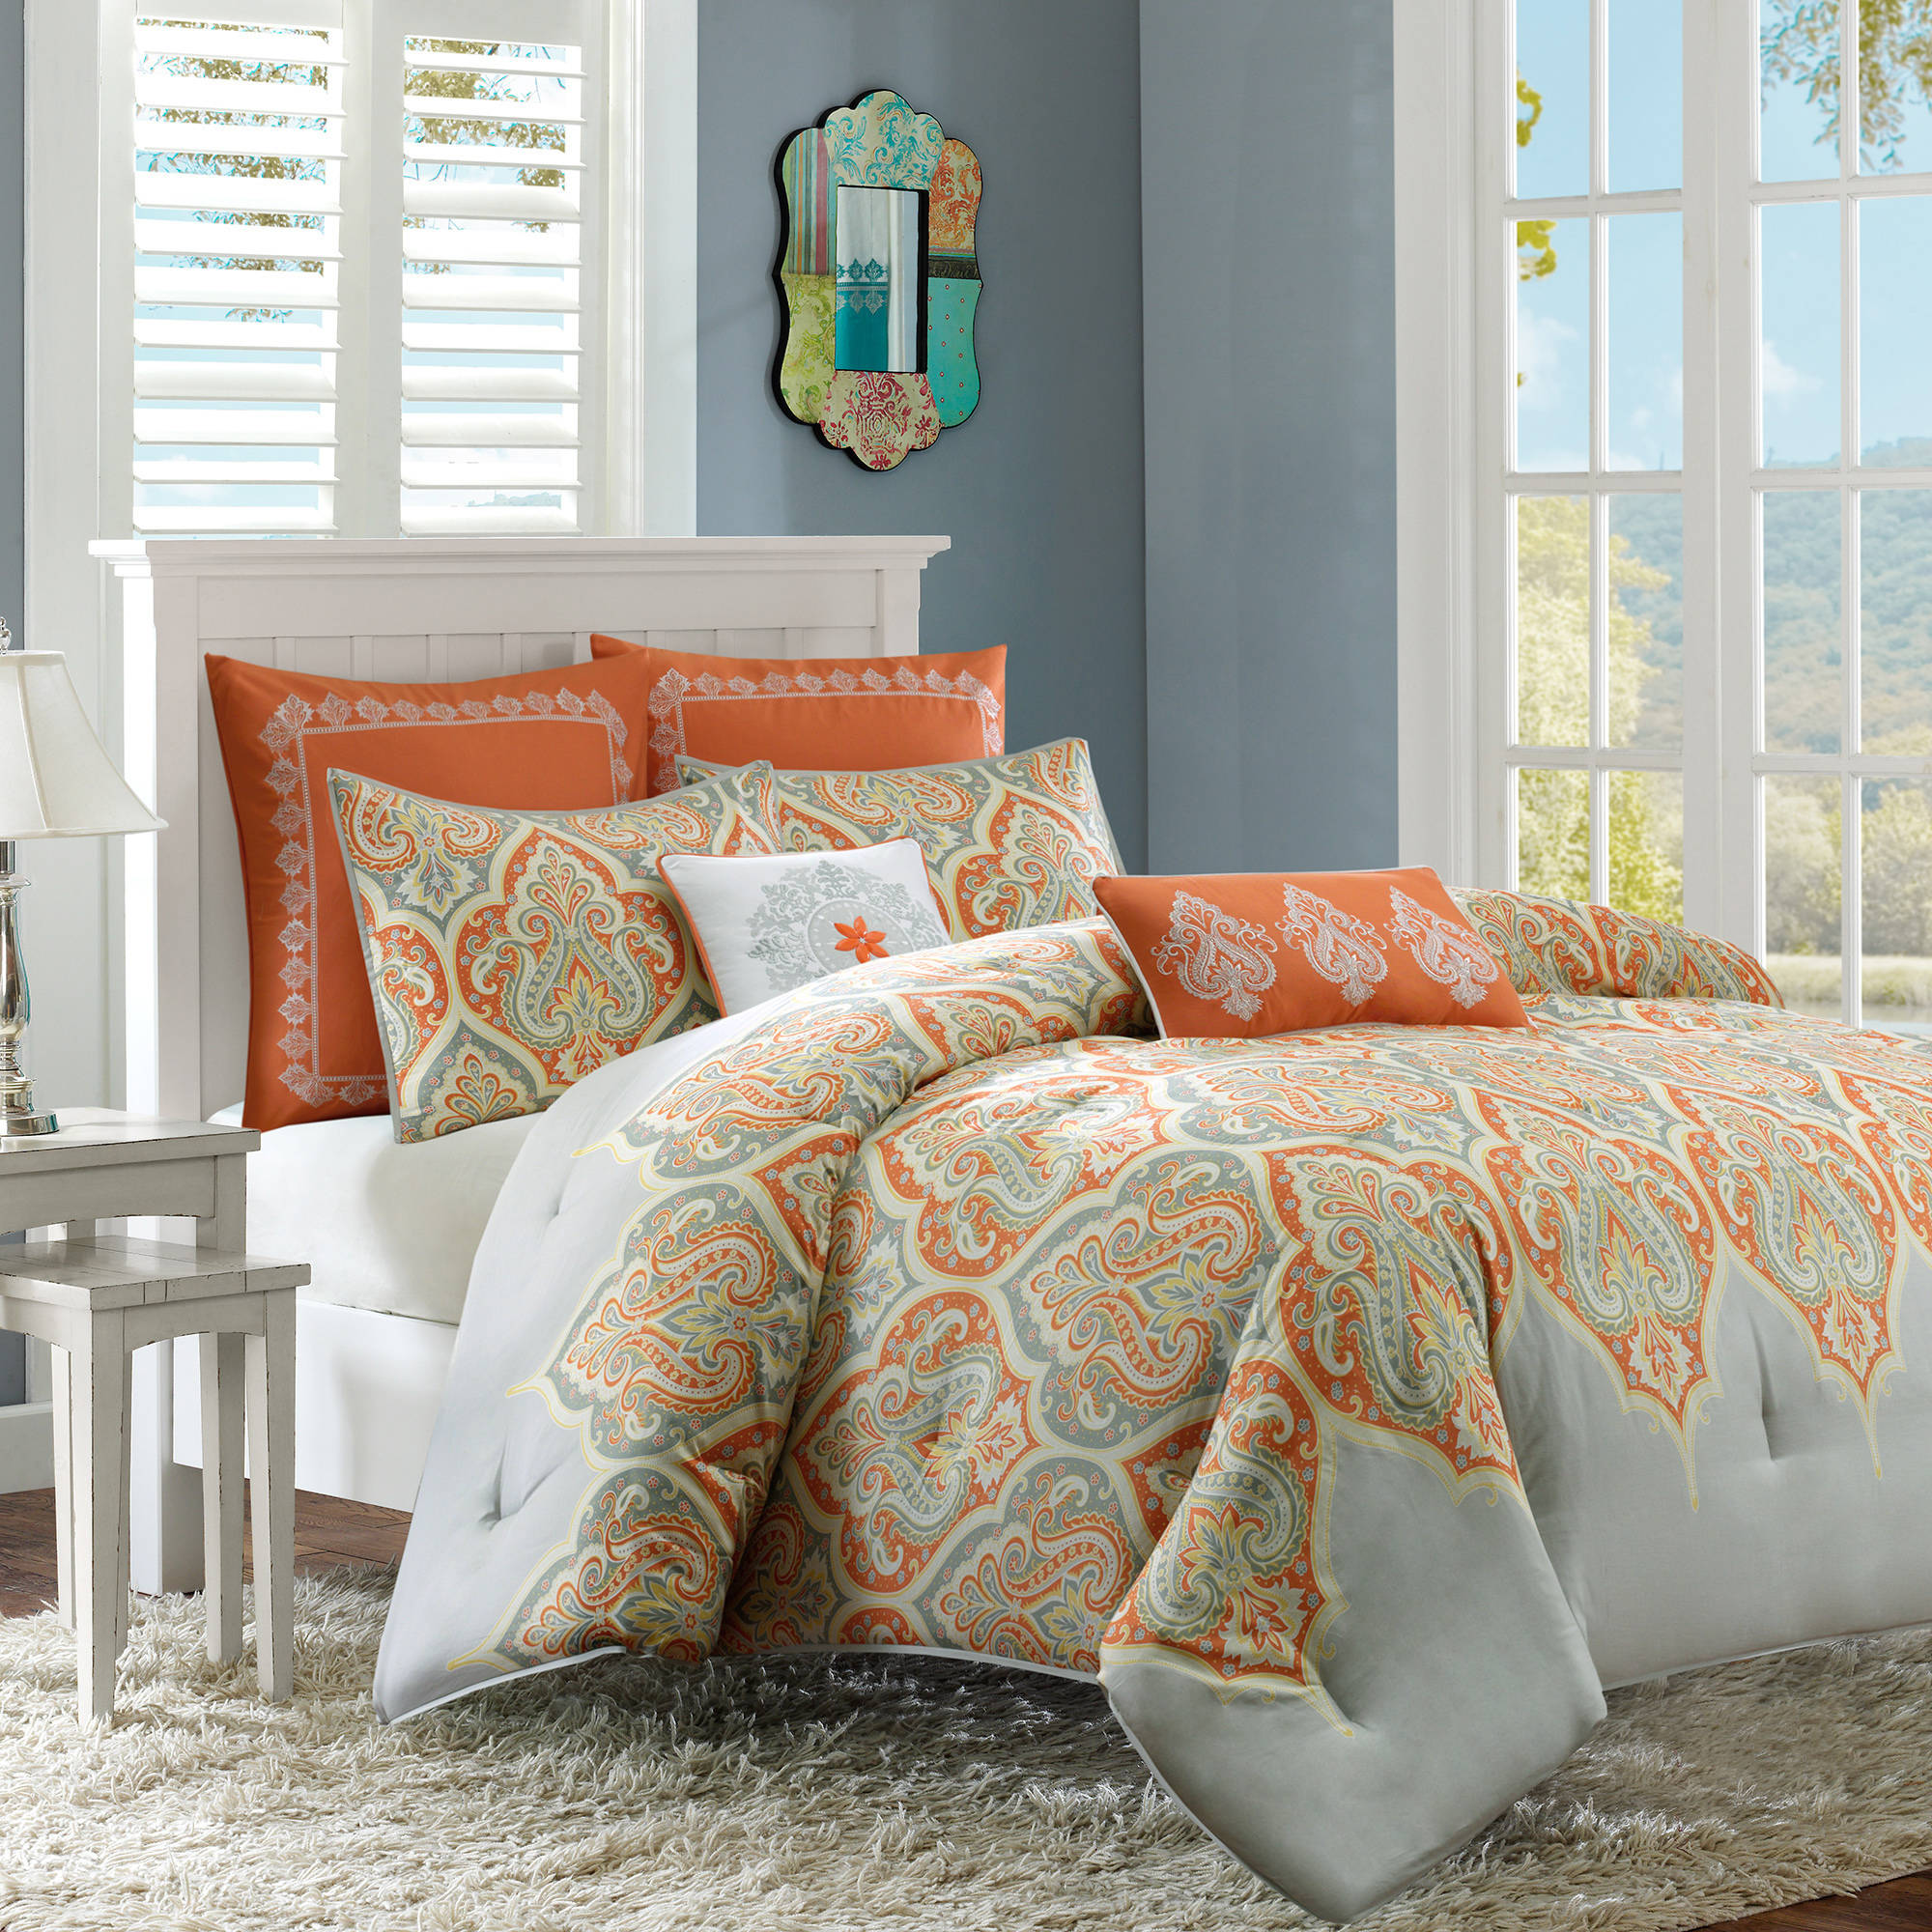 bed green dark double quilt orange with white cover striped them in bedspreads sets and set blue purple queen pink comforters silver comforter light grey navy bedspread yellow sheets brown teal bedding